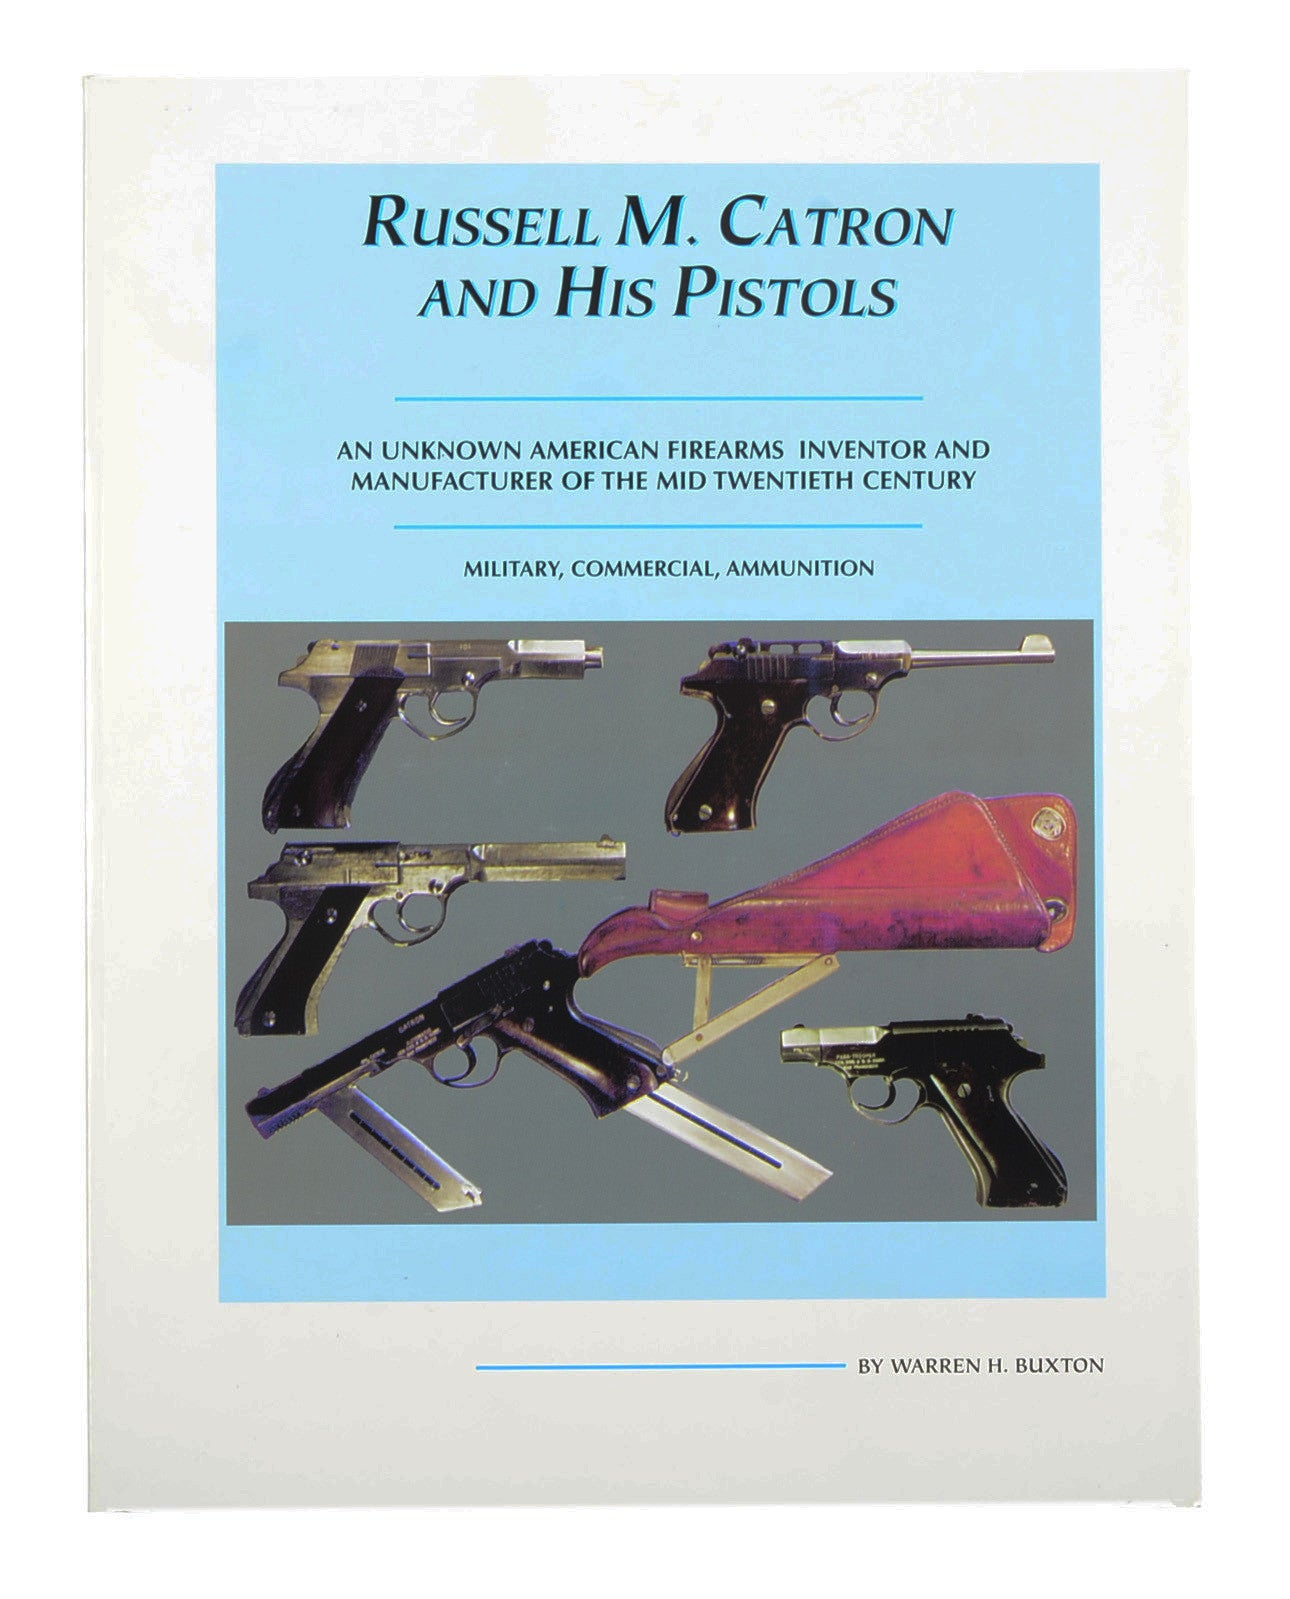 RUSSELL M. CATRON AND HIS PISTOLS